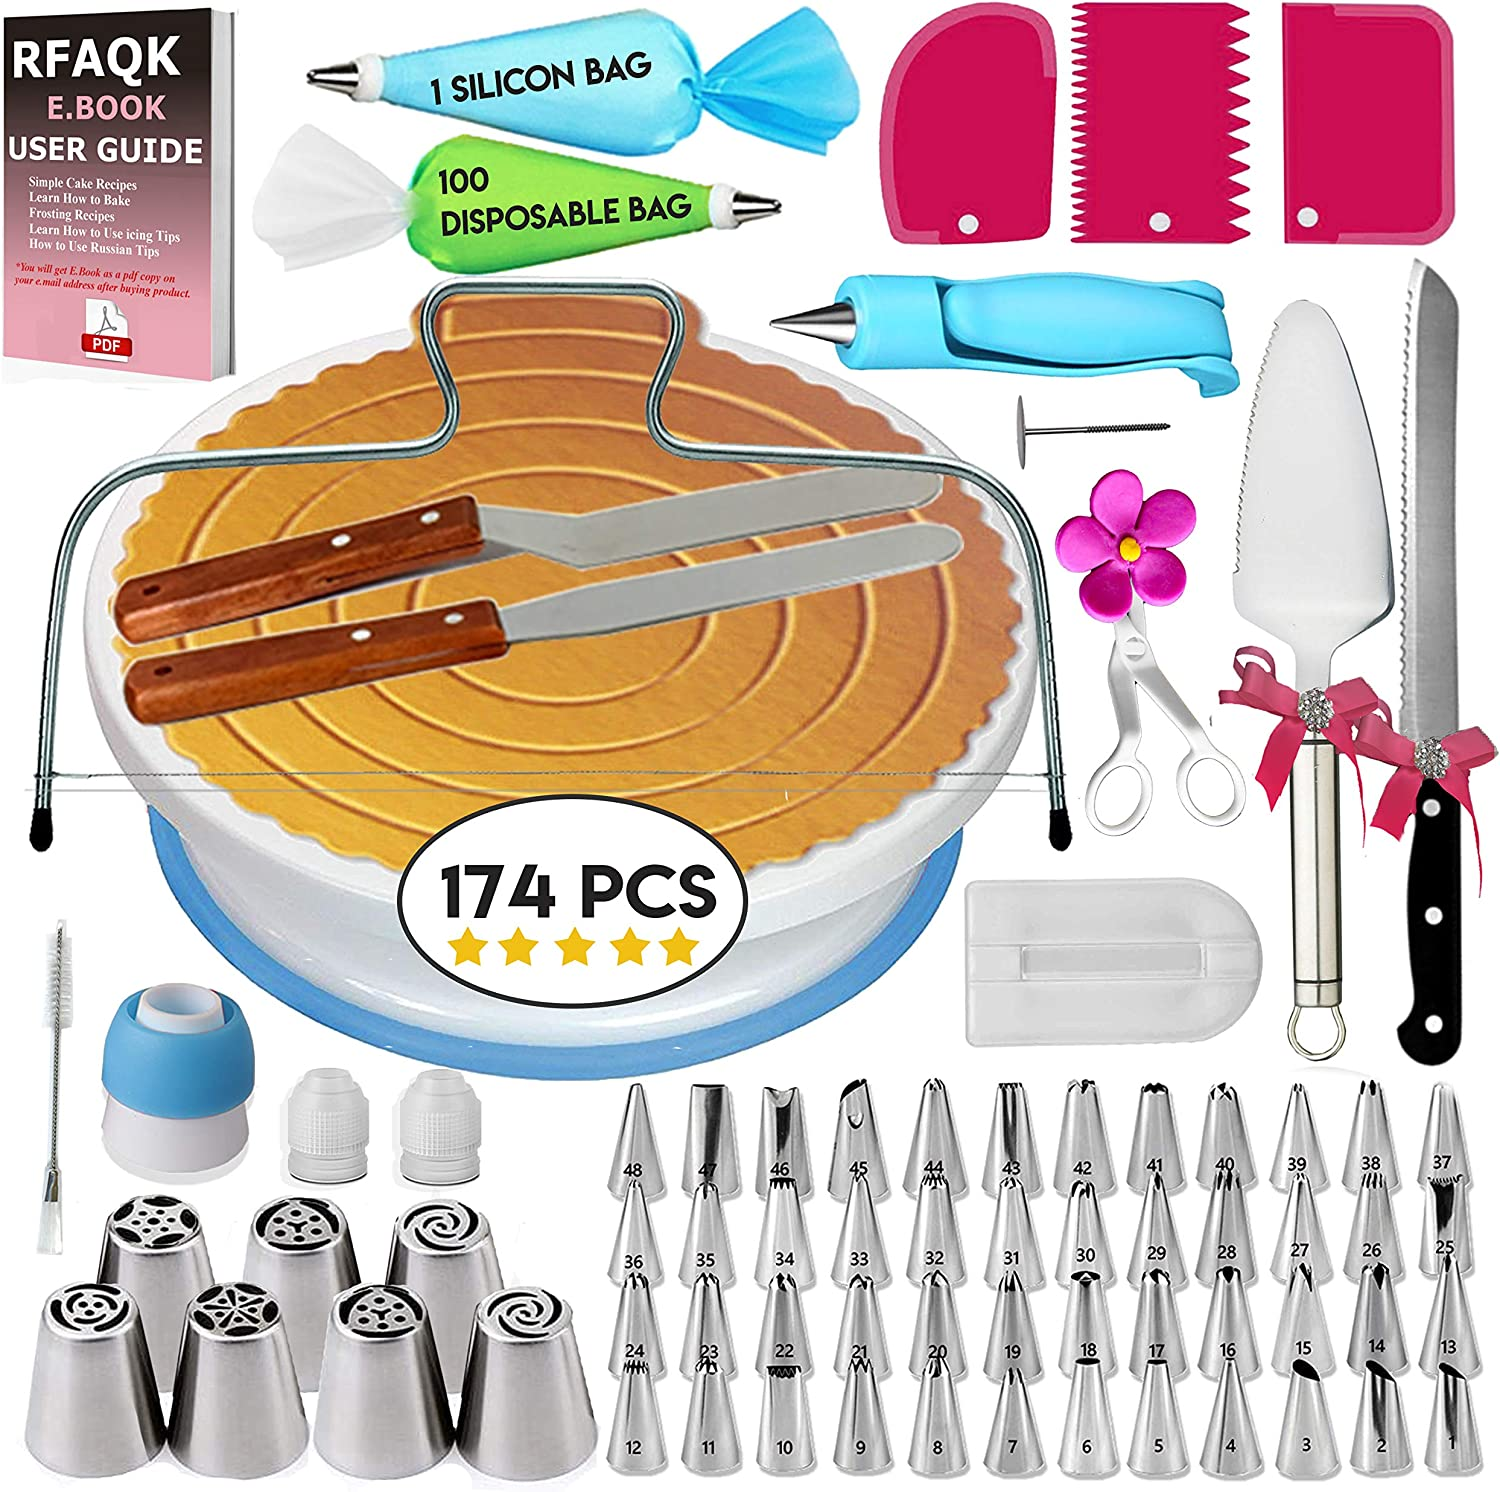 Cake Decorating Supplies Kit for Beginners